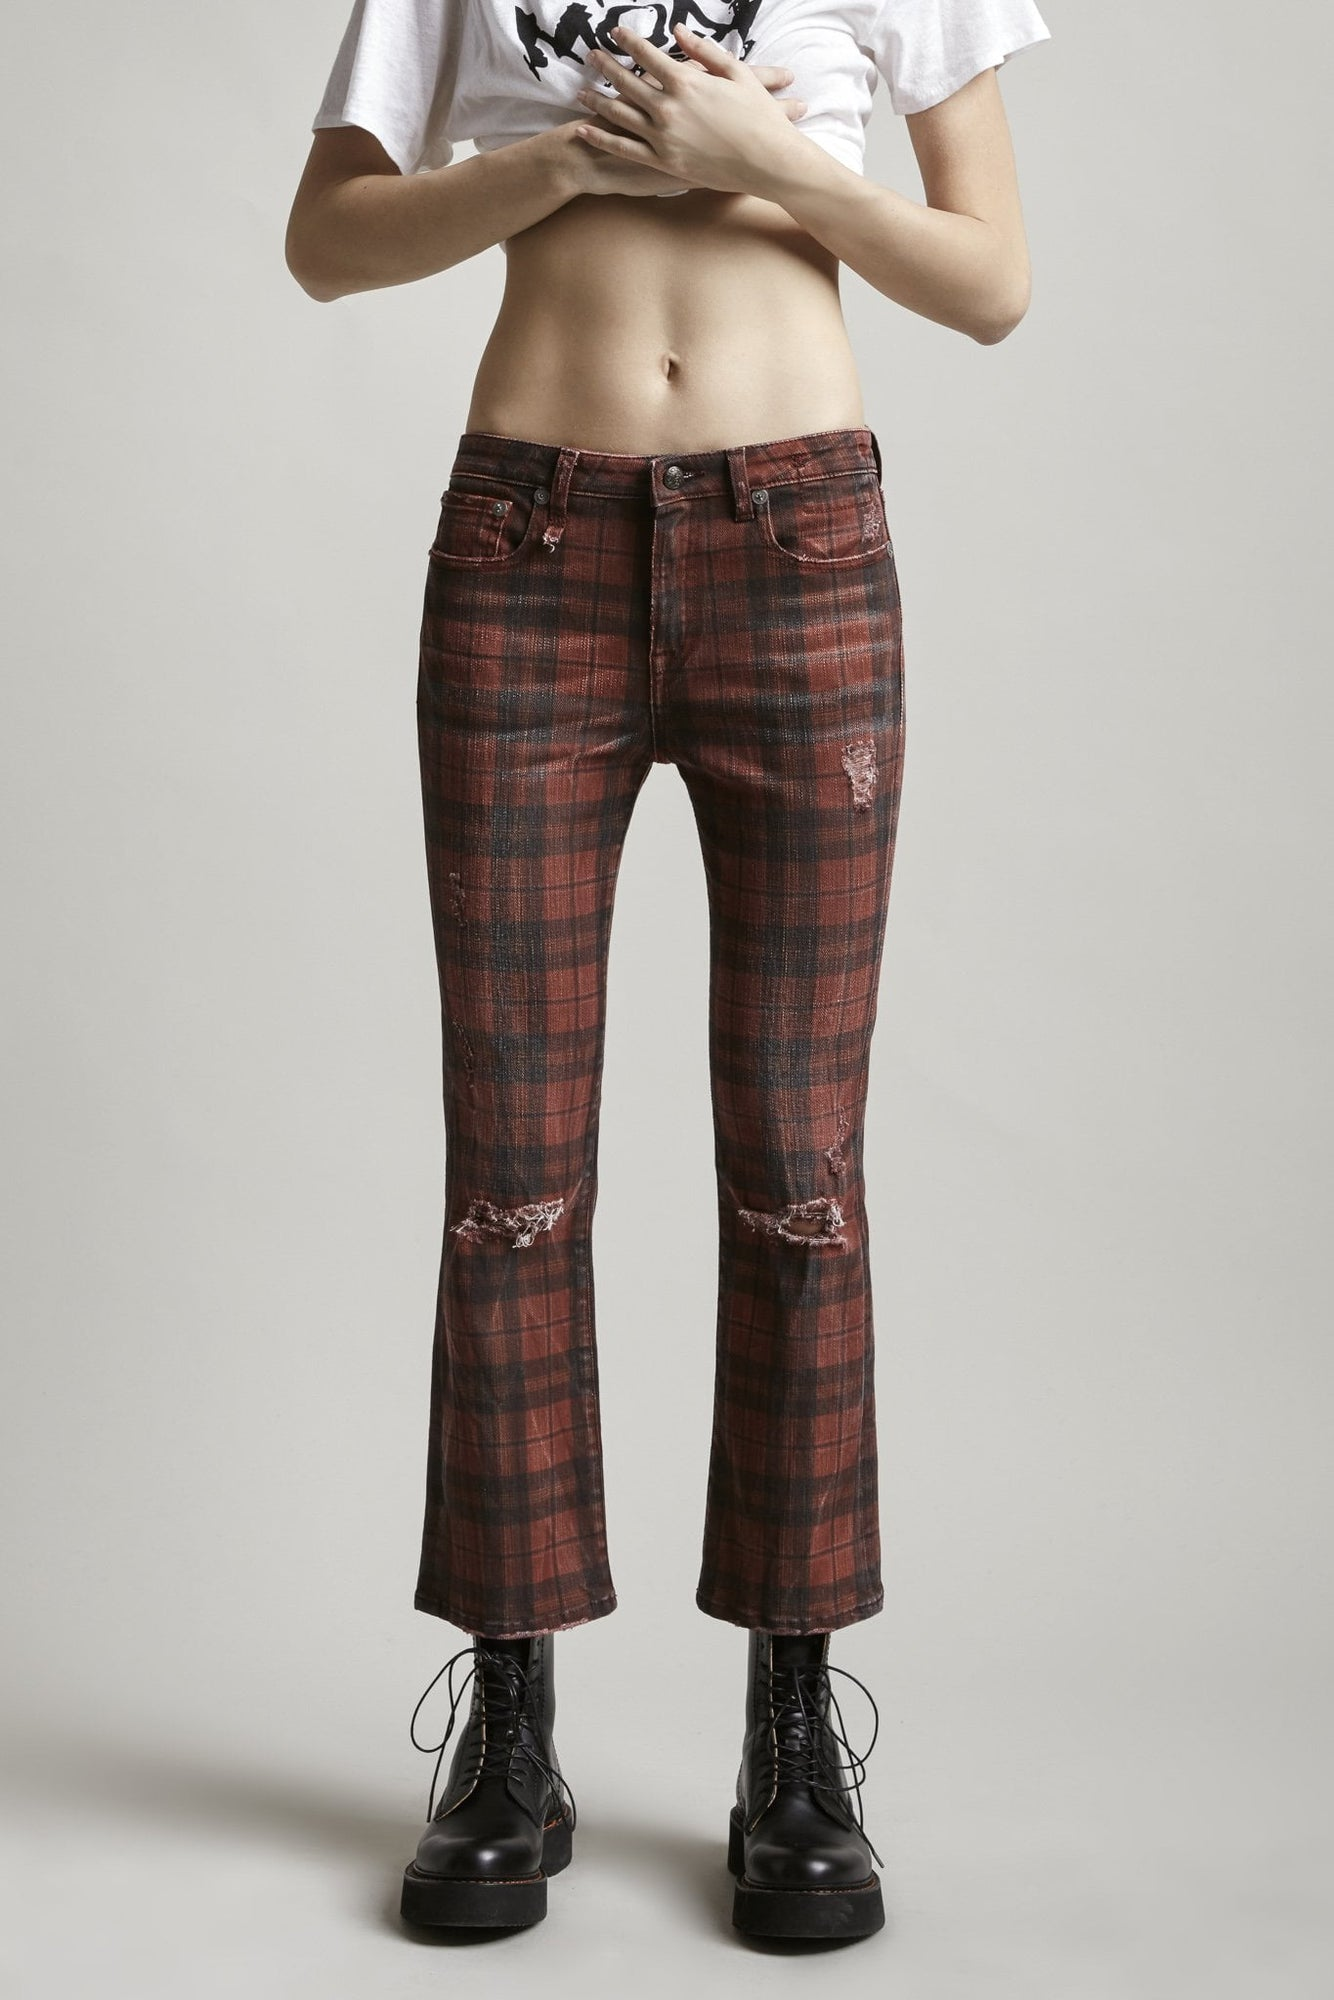 Kick Fit - Red Plaid